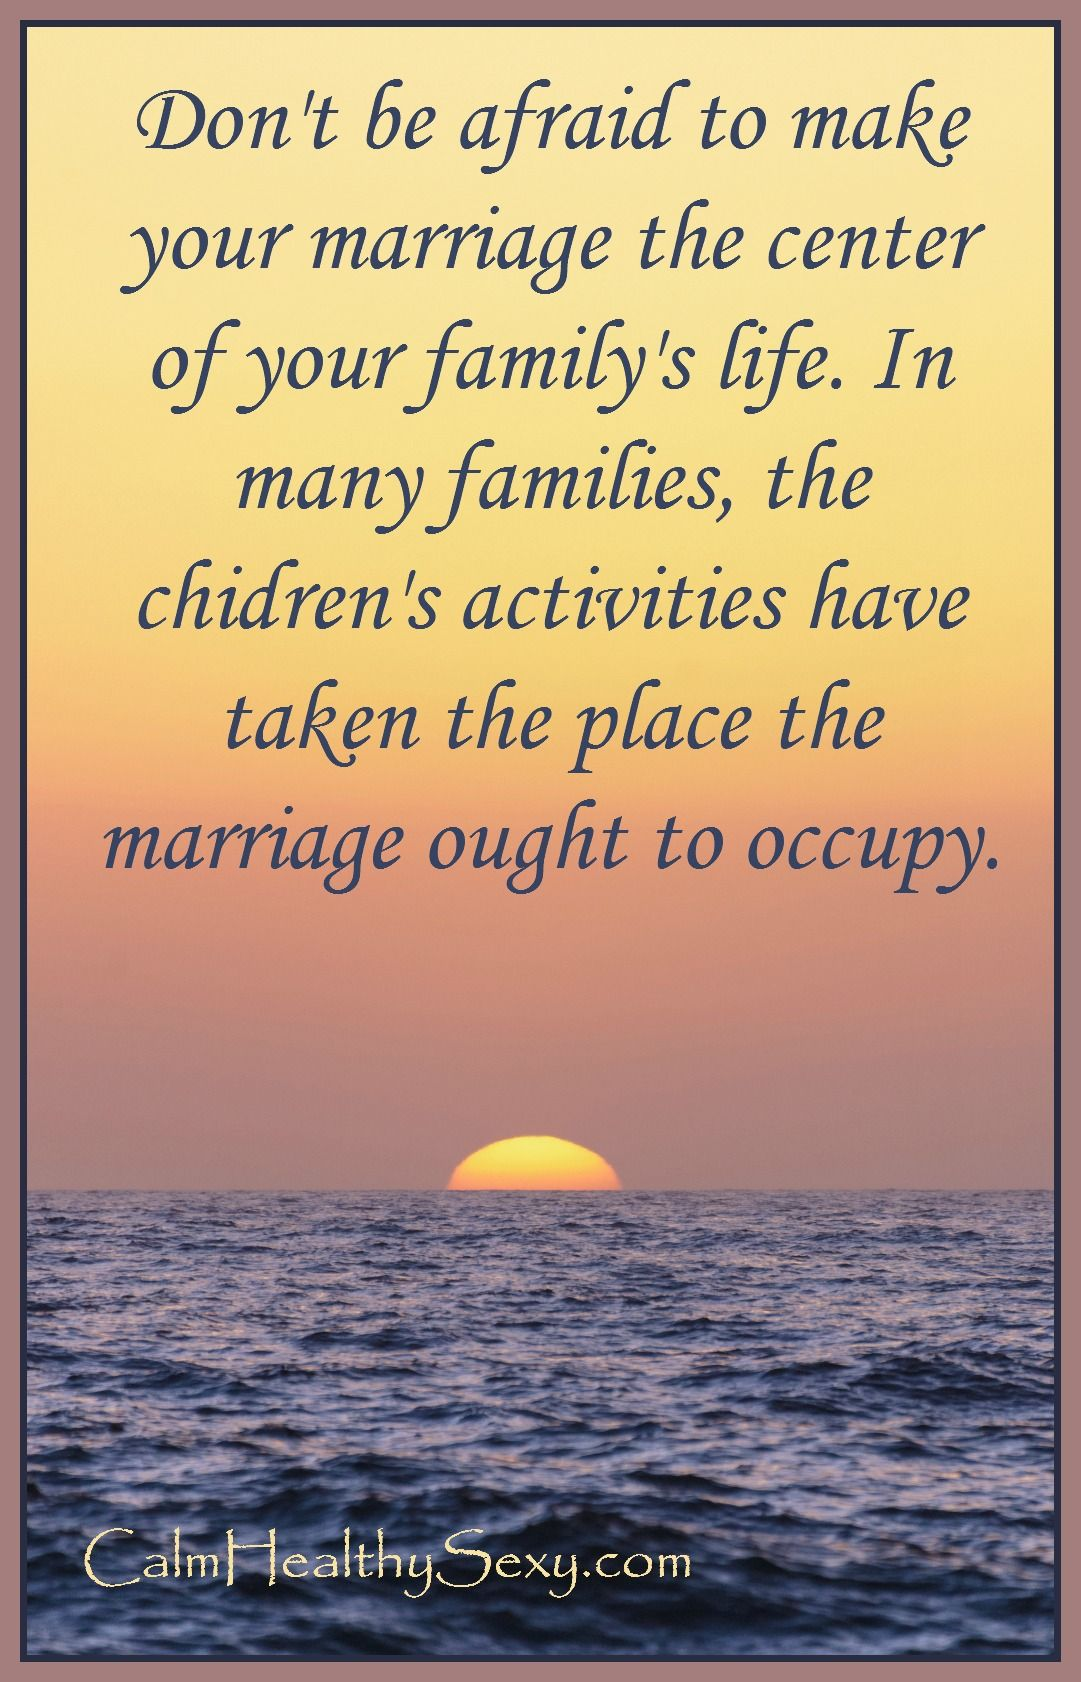 Inspirational Marriage Quotes 17 Inspirational Marriage Quotes  Free Printables  Free